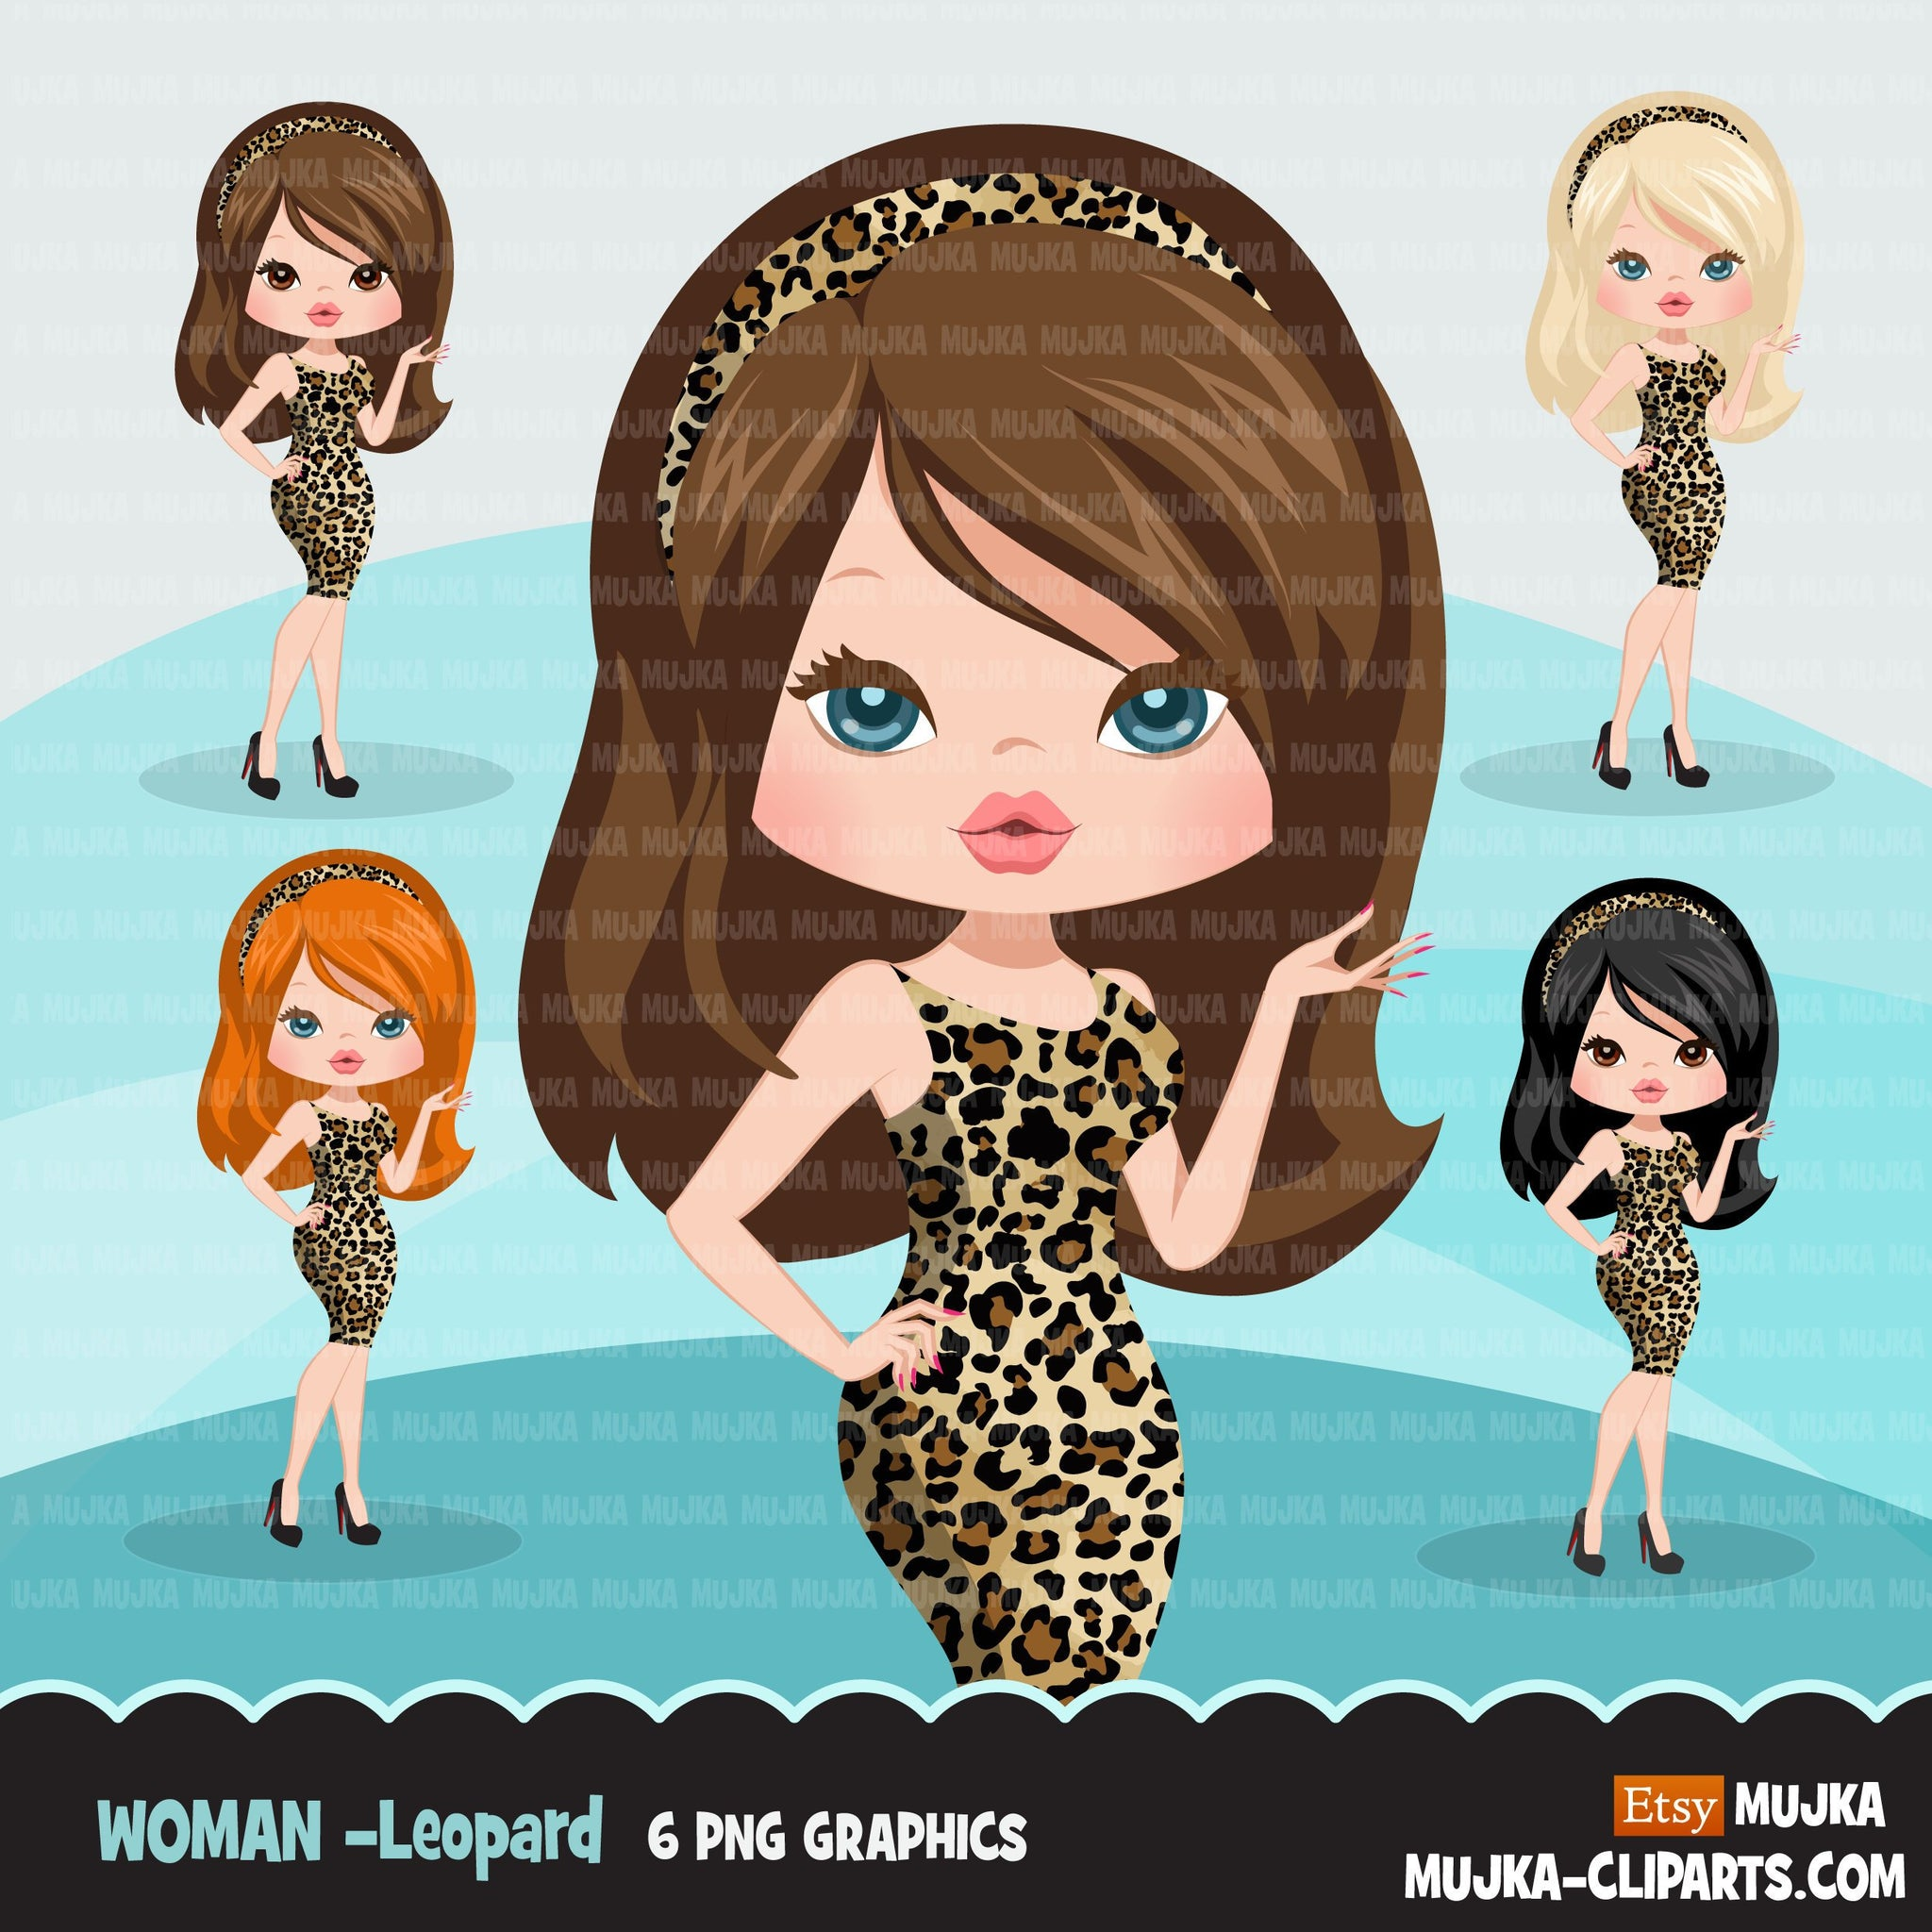 Woman clipart with leopard print business avatar graphics, print and cut PNG T-Shirt Designs, Girls clip art